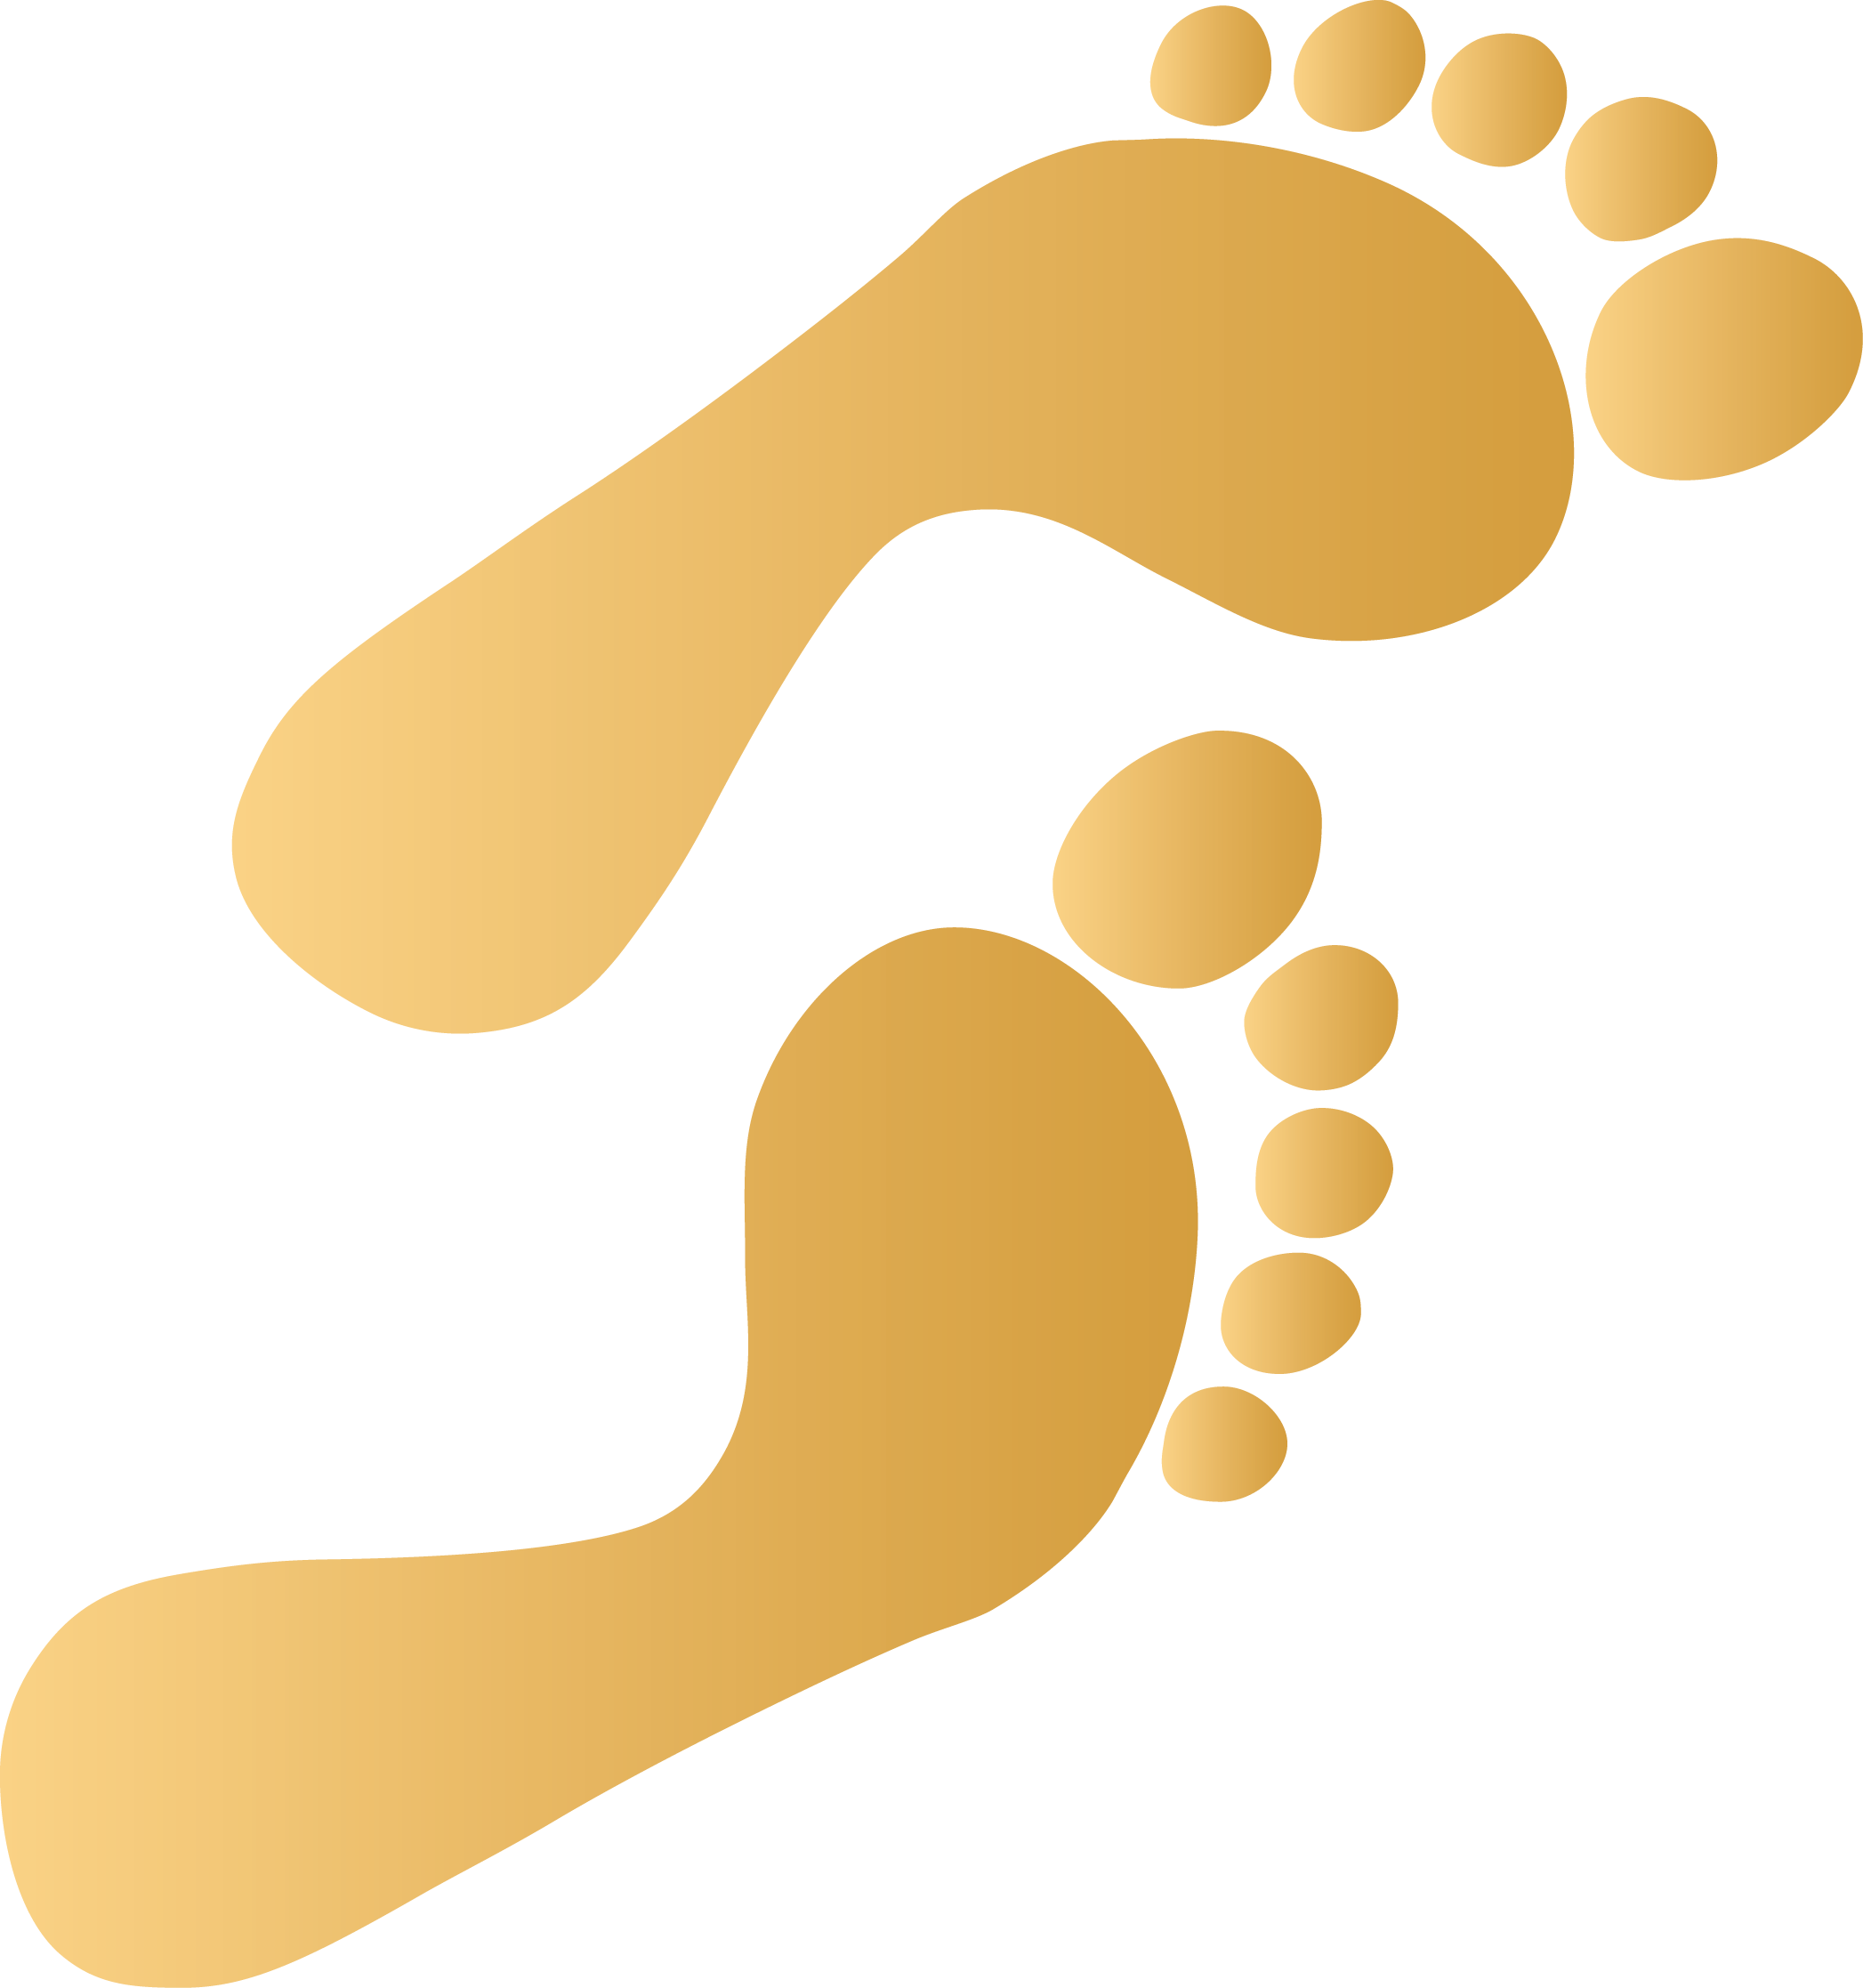 Ages 6 12 Bible Timeline Footprints Graphic